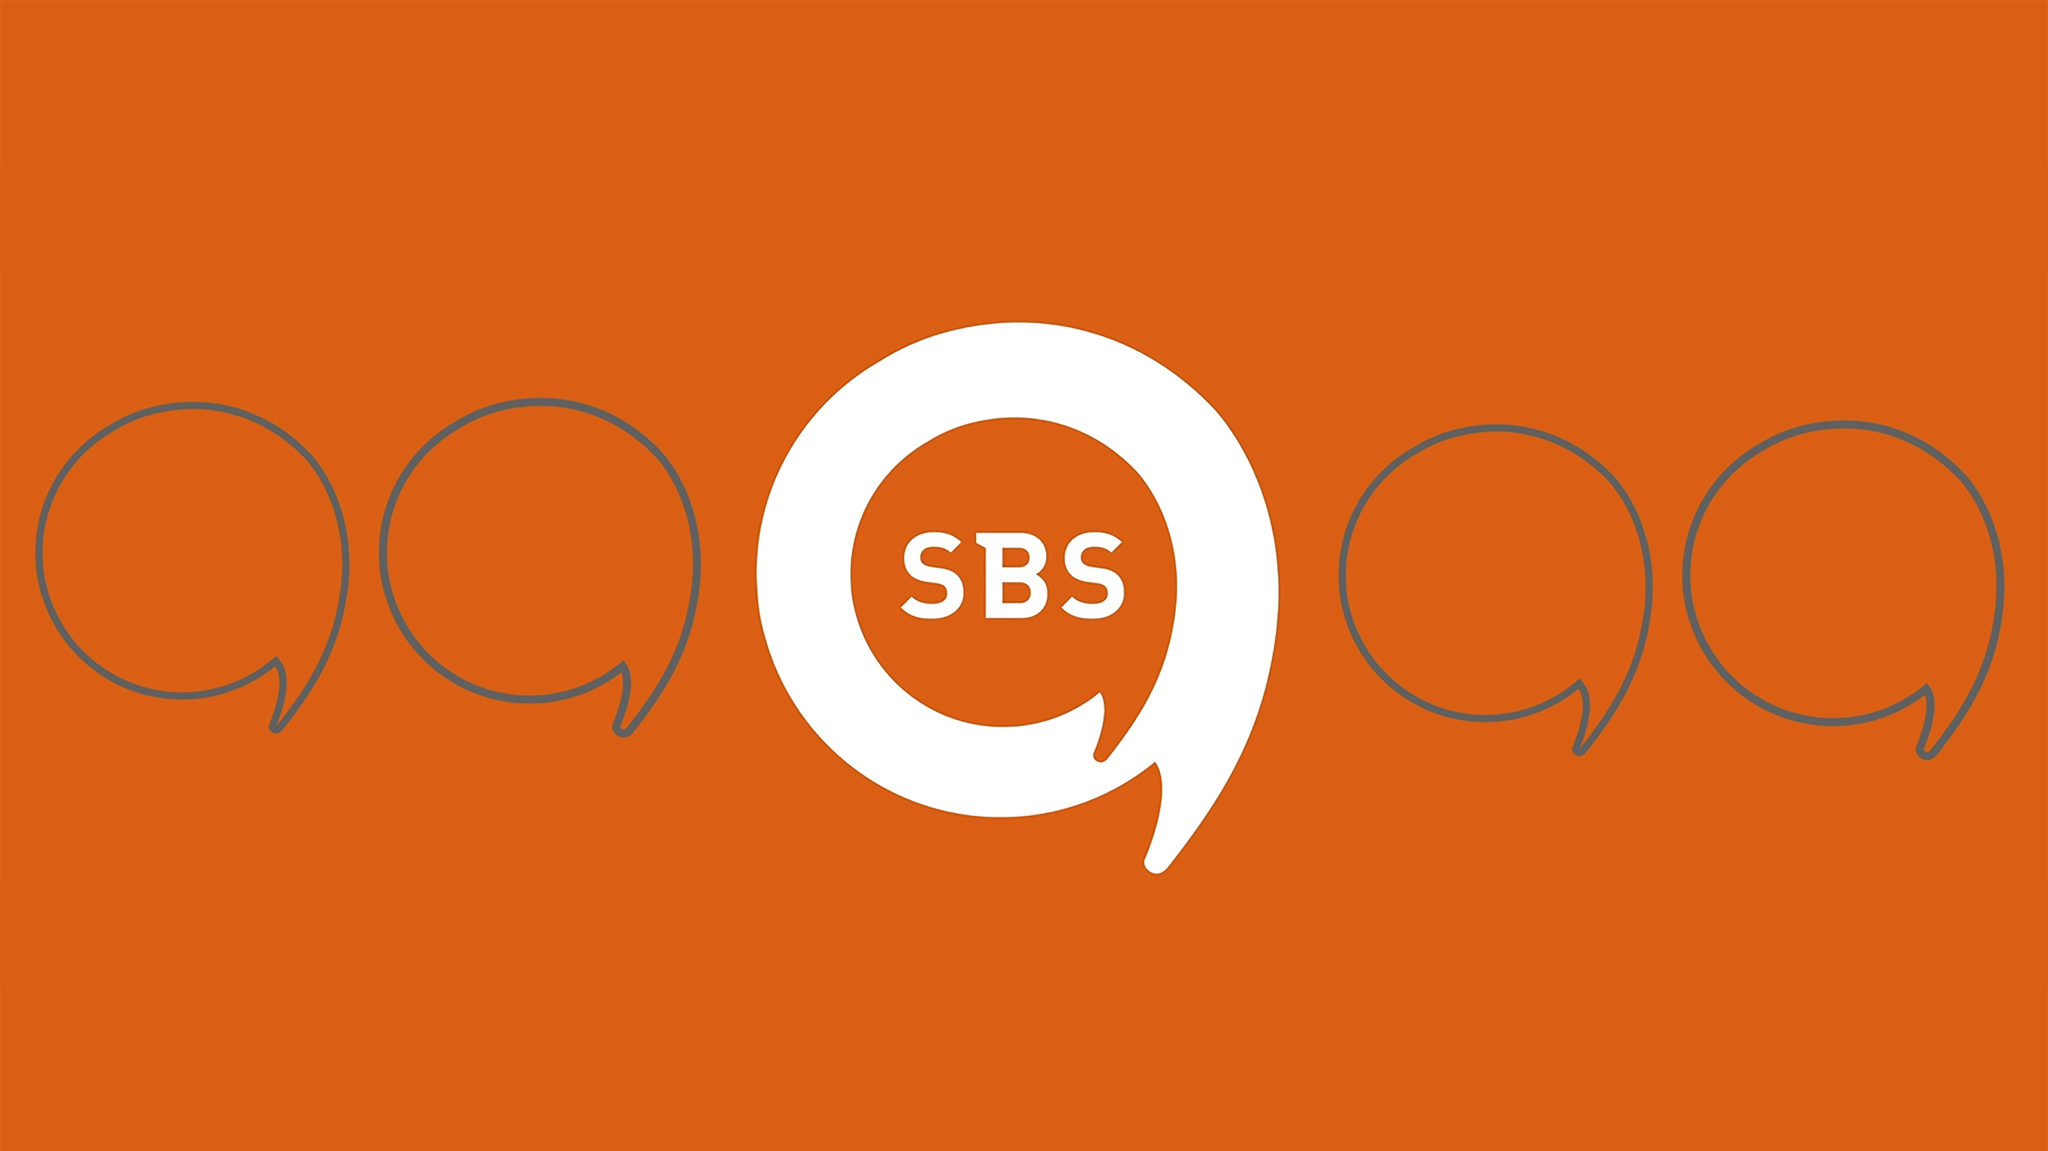 SBS speak bubble